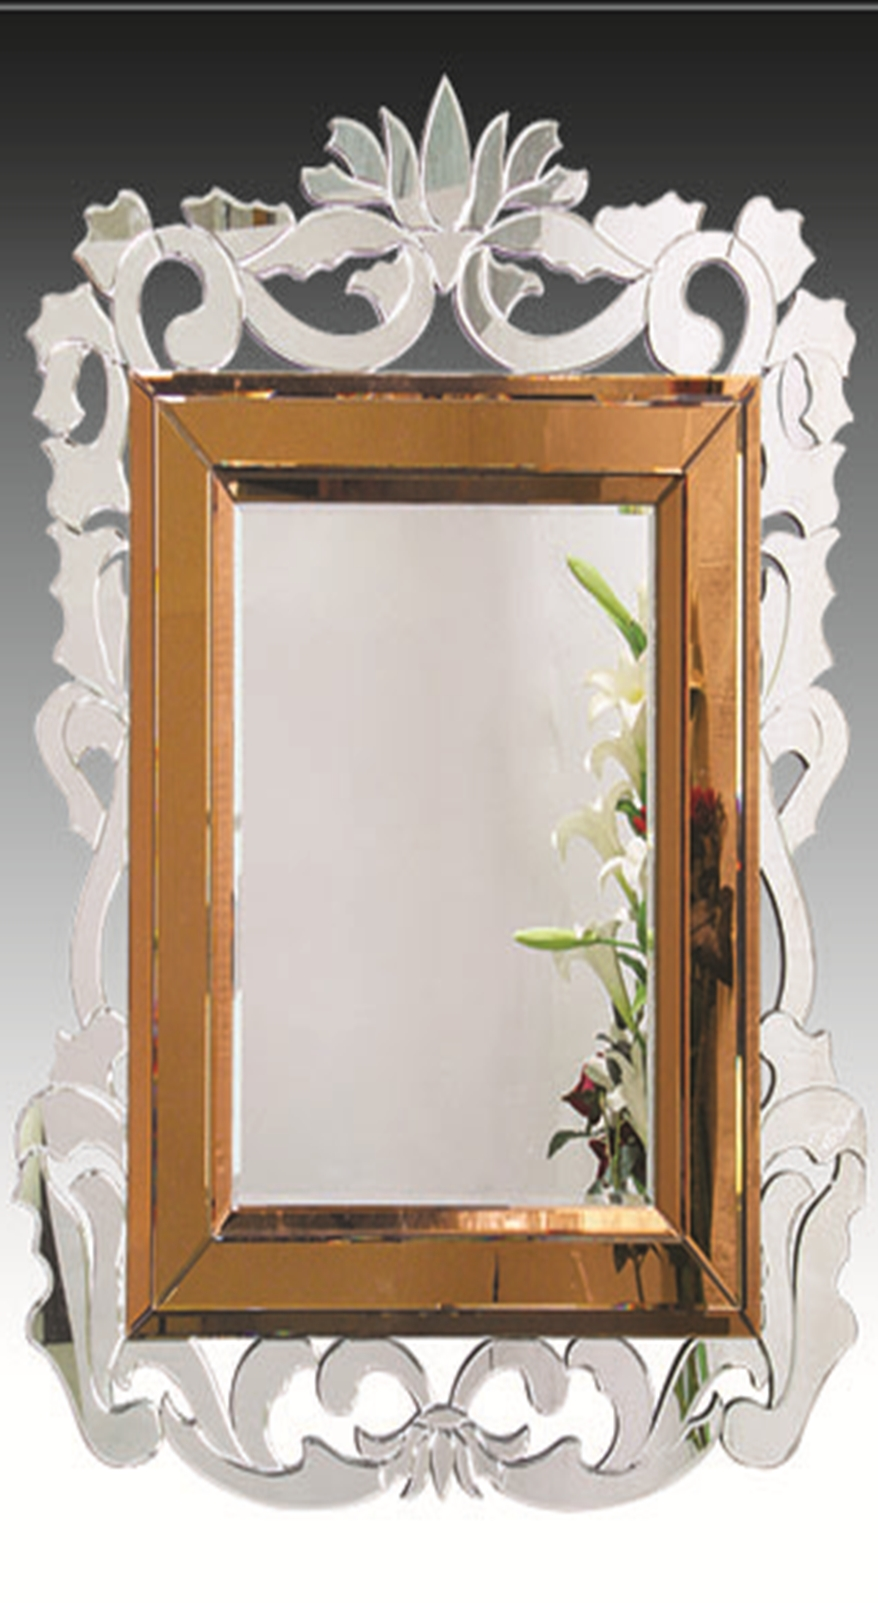 French Baroque Style Bronze Venetian Wall Mirror Jh004 With Regard To Baroque Wall Mirror (View 20 of 20)